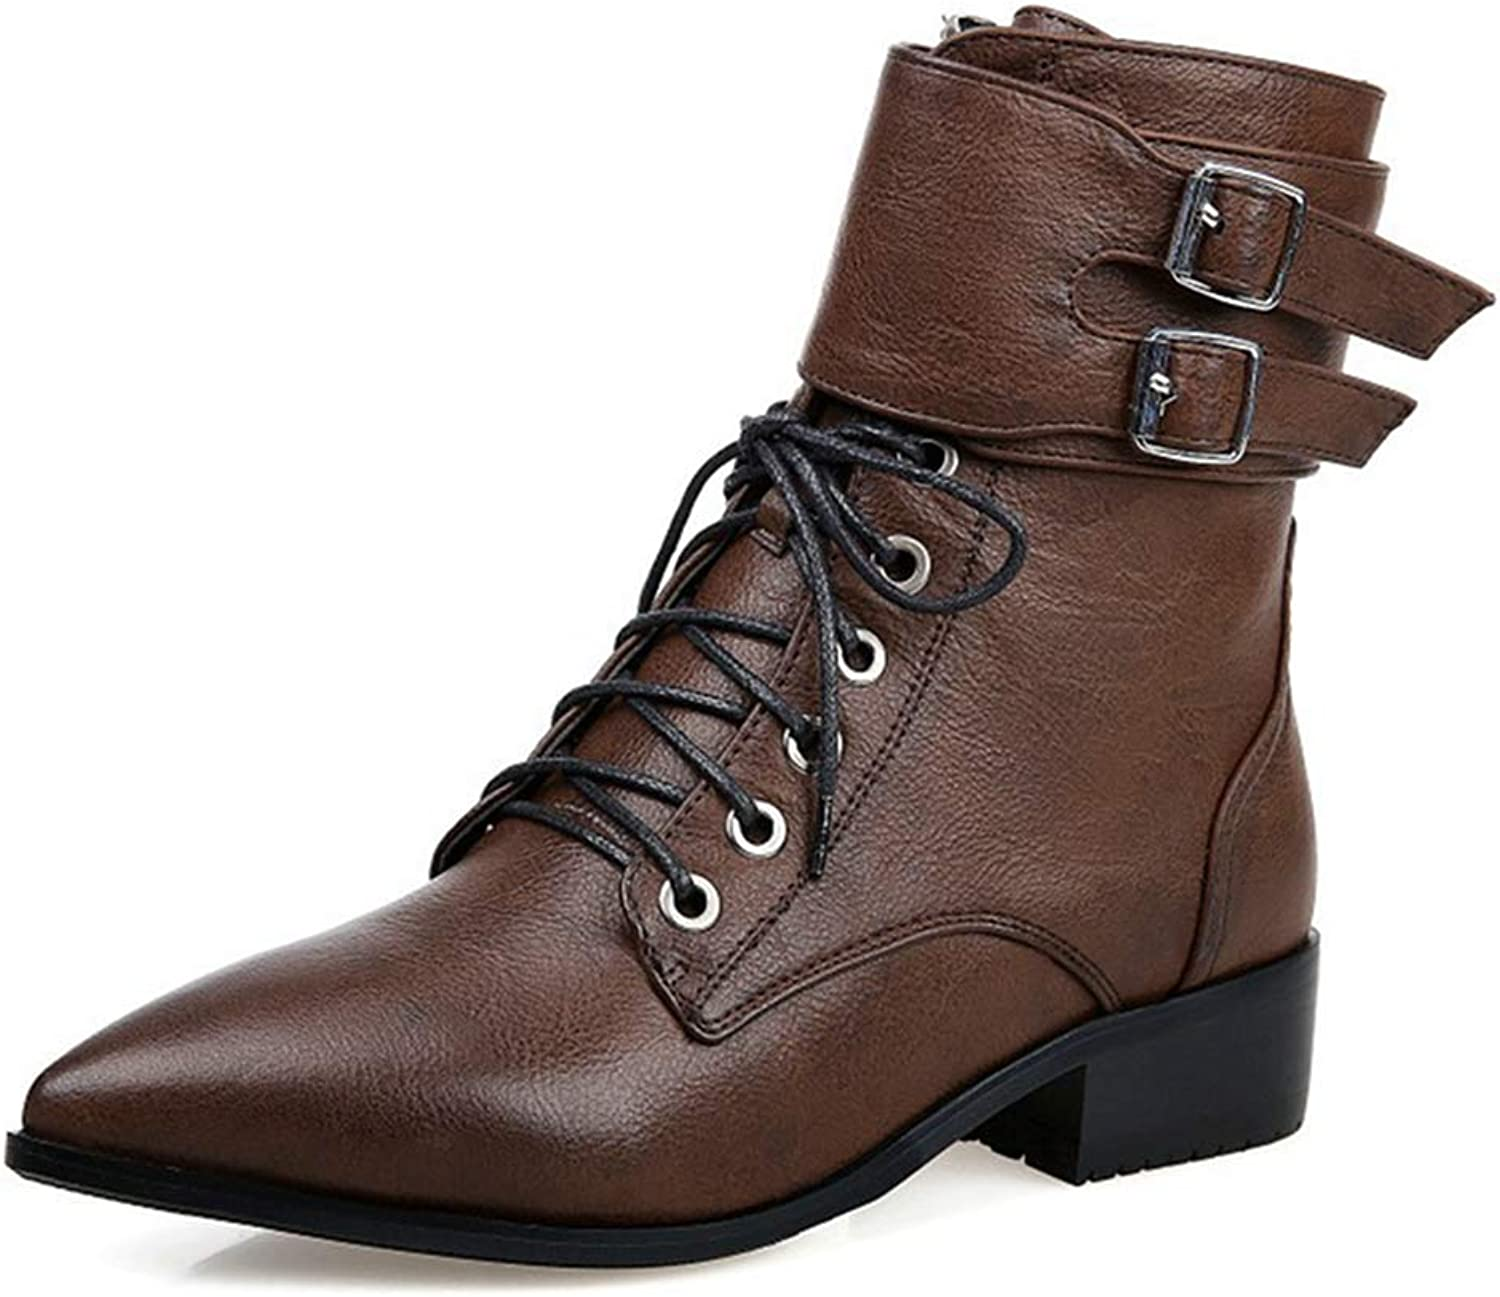 GIY Women's Chelsea Buckle Ankle Boots Combat Pointed Toe Lace Up Zip Low Heel Western Riding Short Bootie